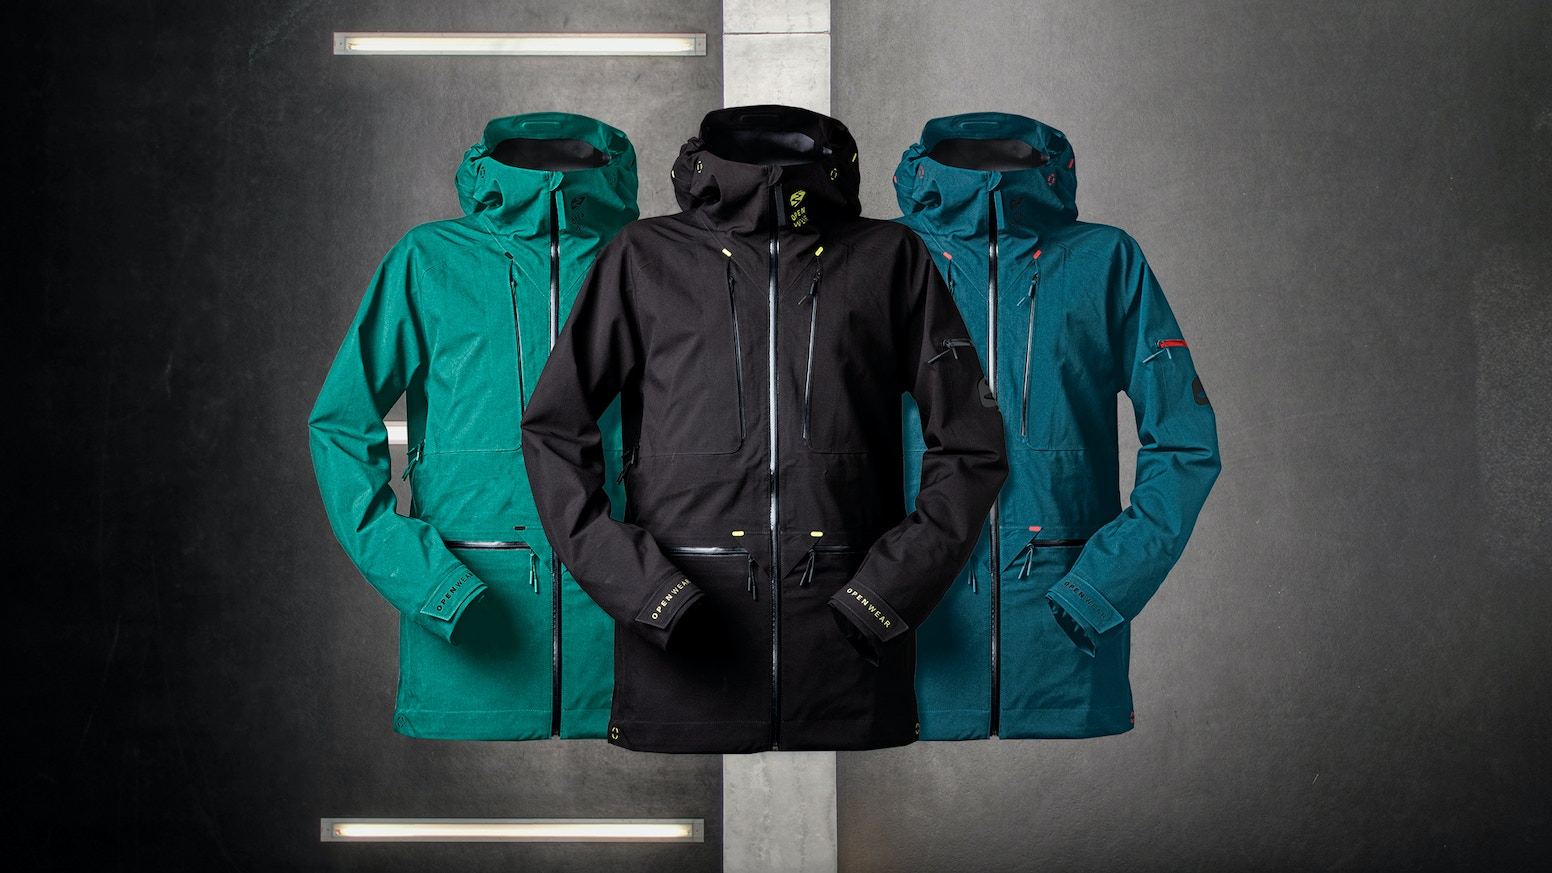 Made of high performance, eco-friendly materials. Packed with useful features. Made affordable by the most open outerwear company.